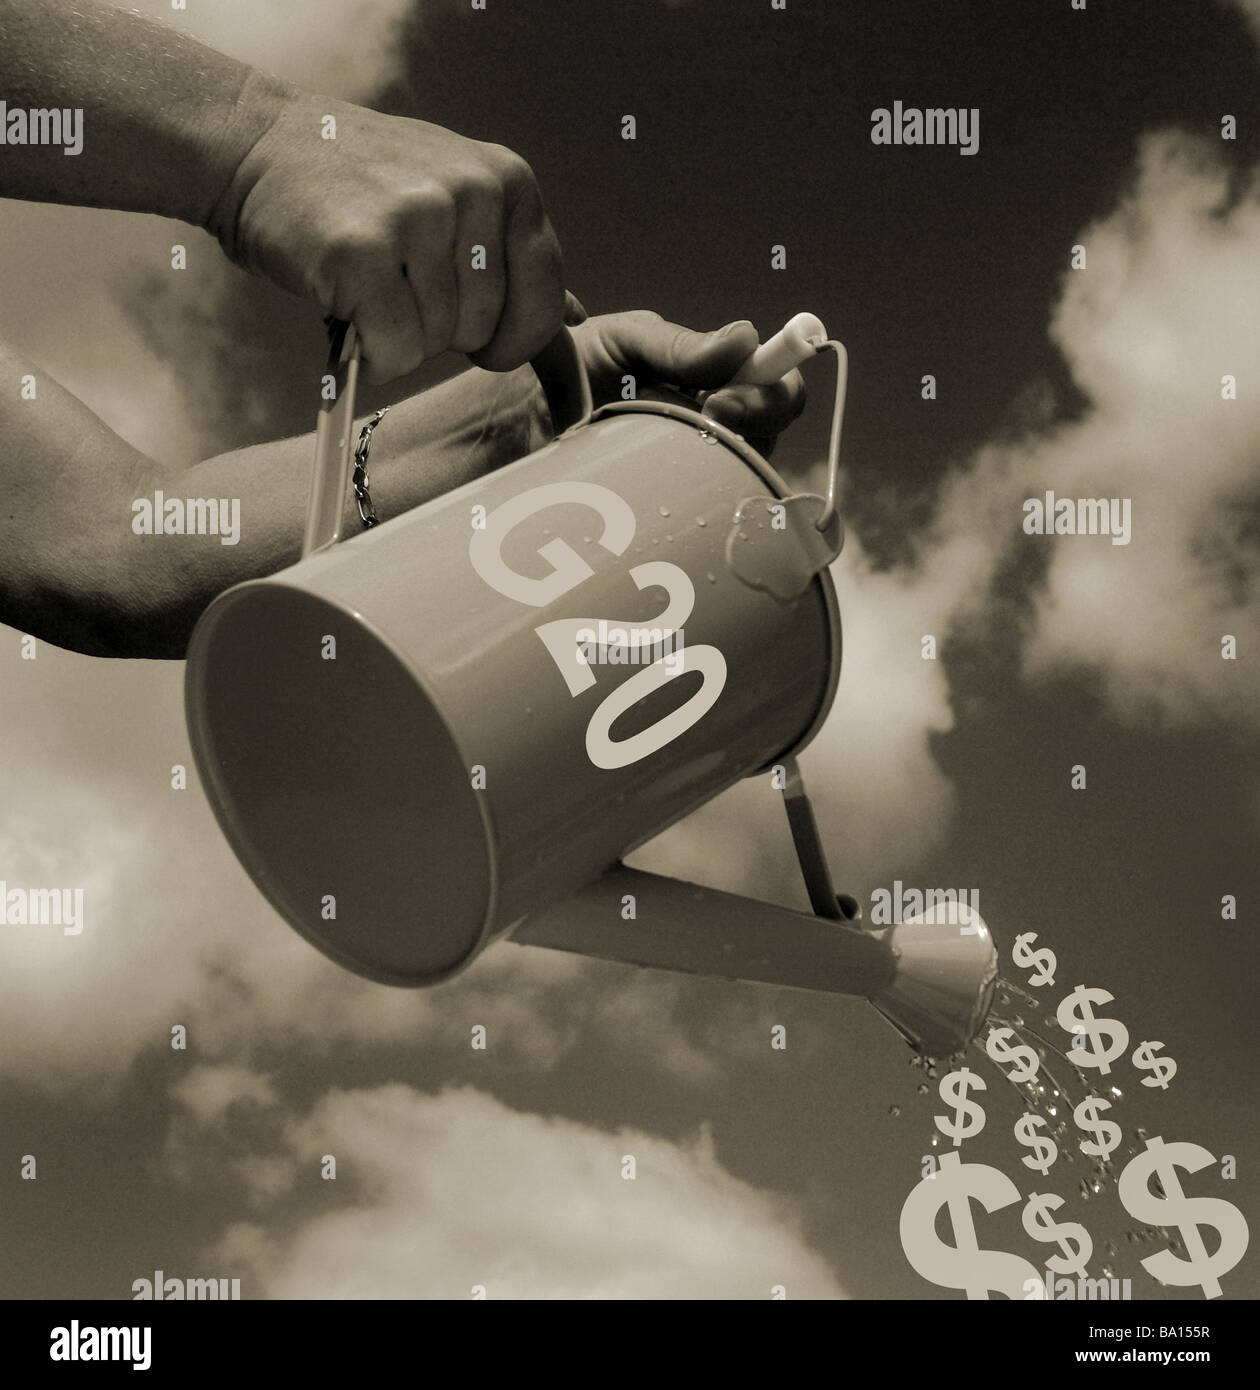 G20 financial stimulus of the world economy (CONCEPT) showing a watering can labeled G20 with dollar graphic instead - Stock Image